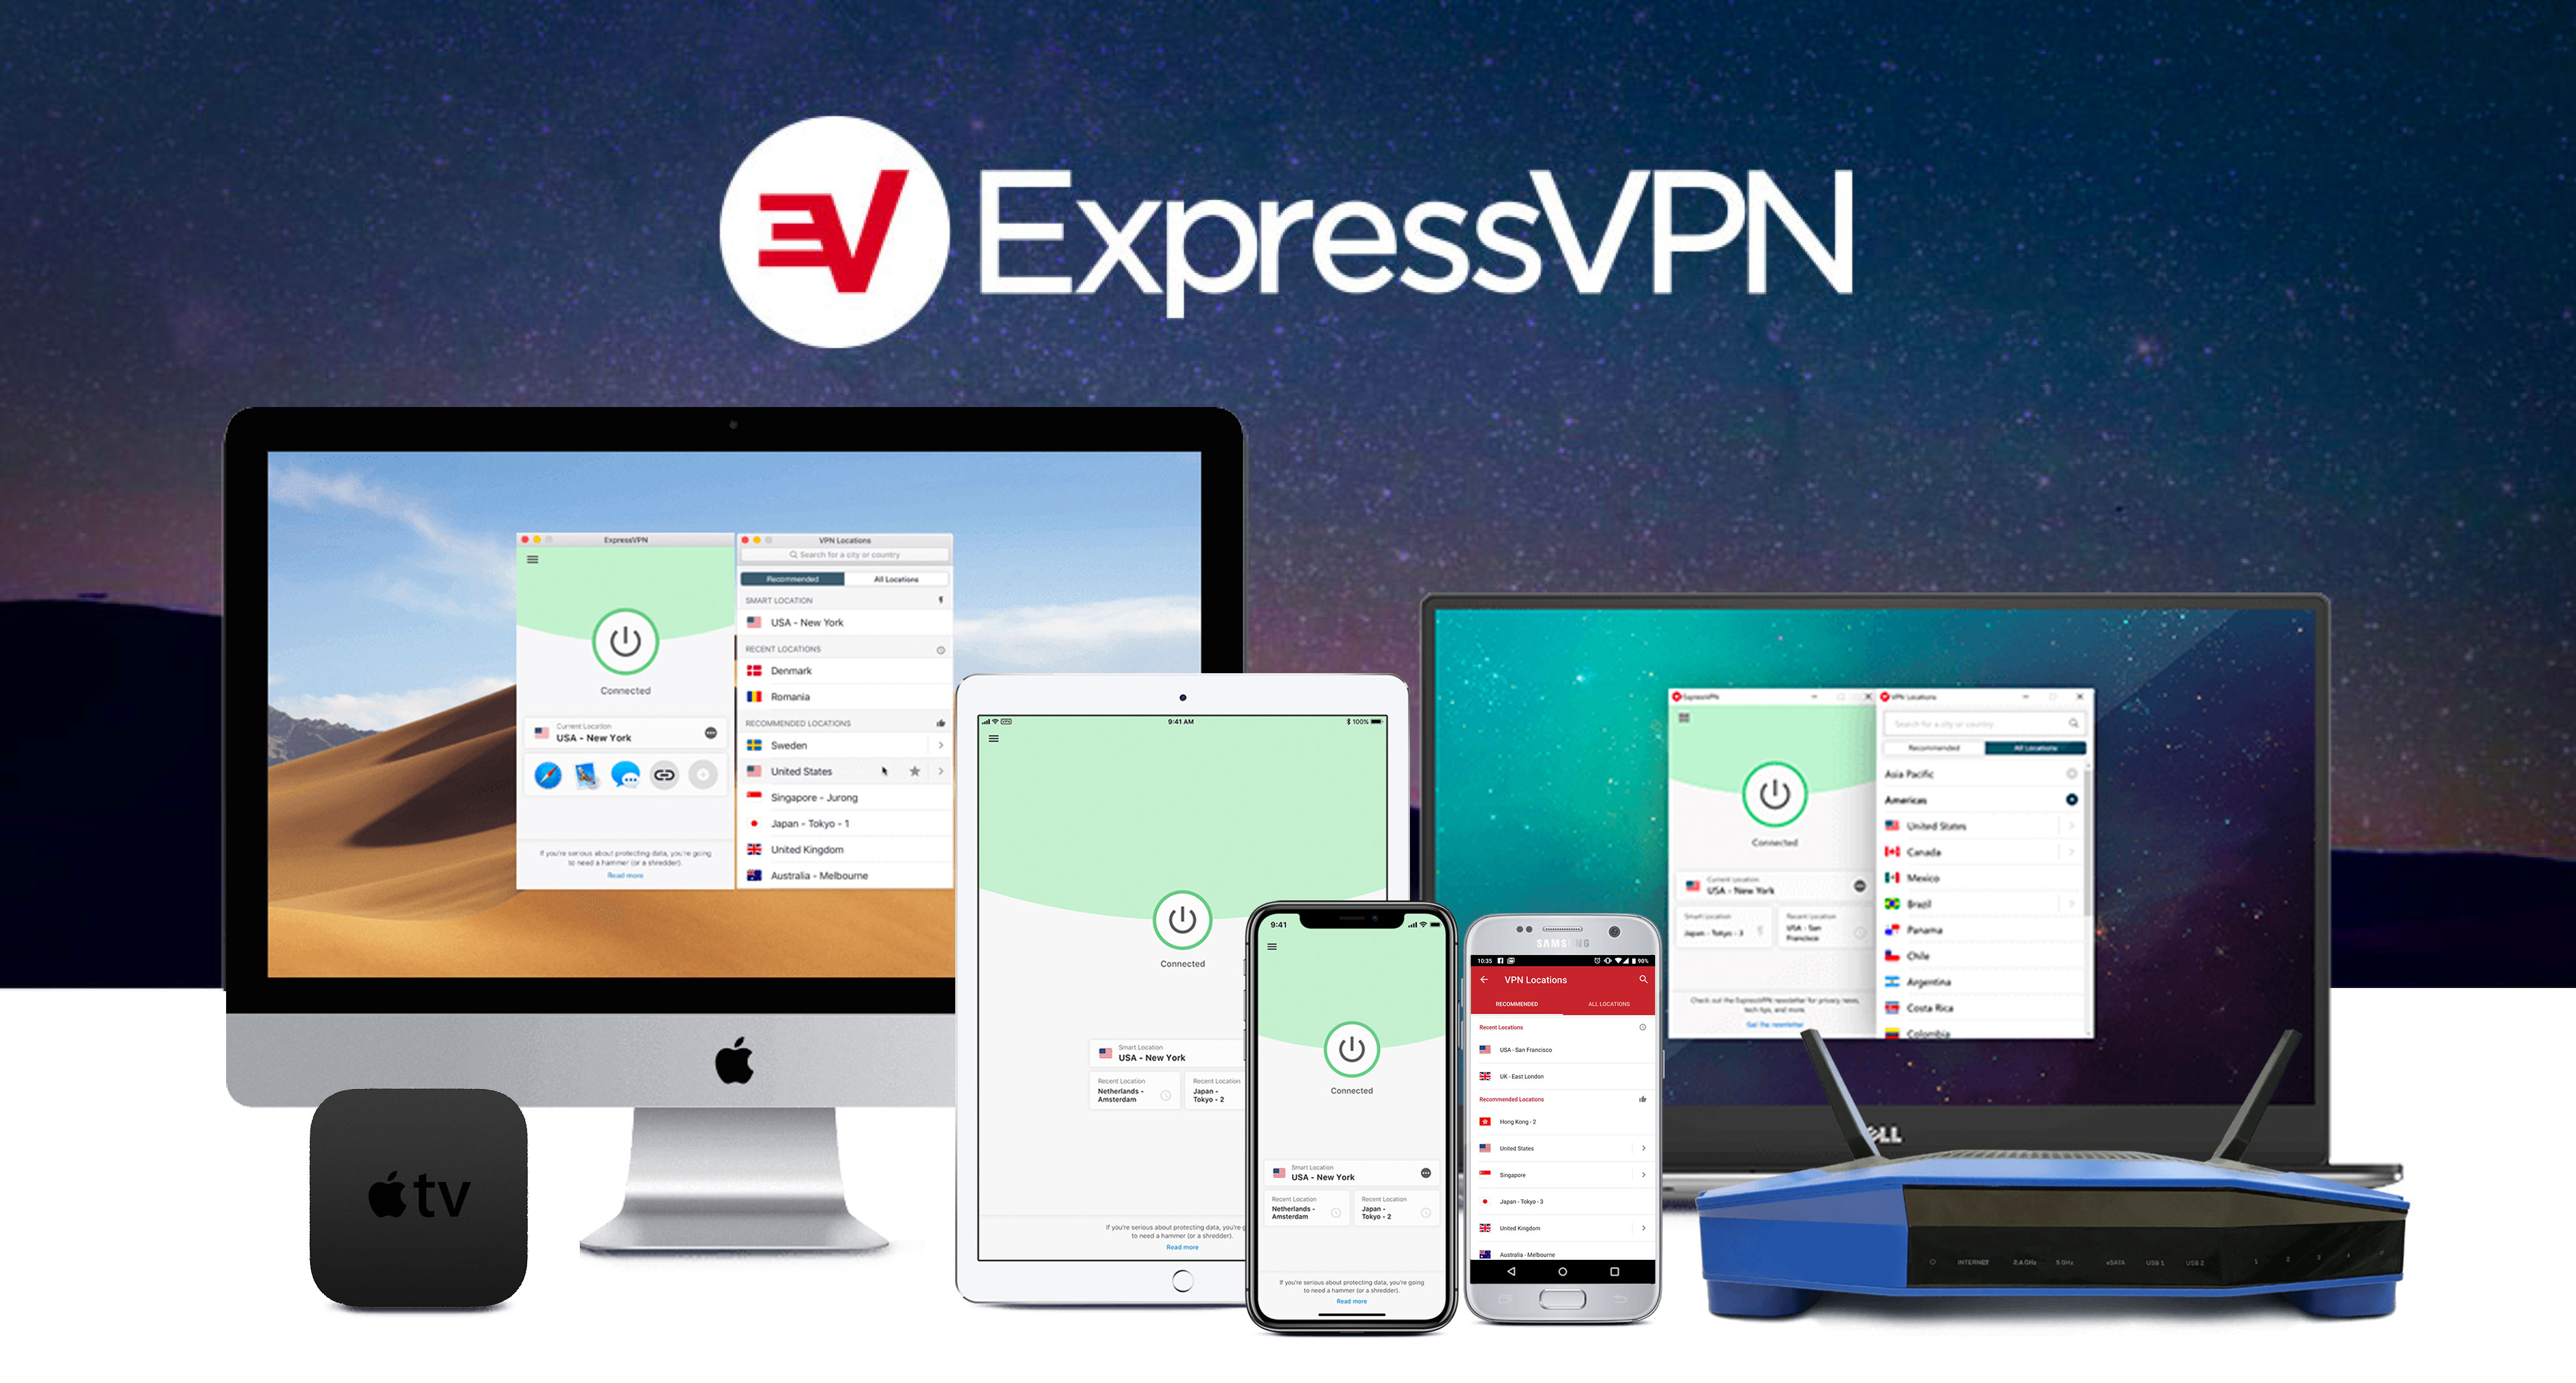 the devices that can be used on expressvpn are all shown in this image